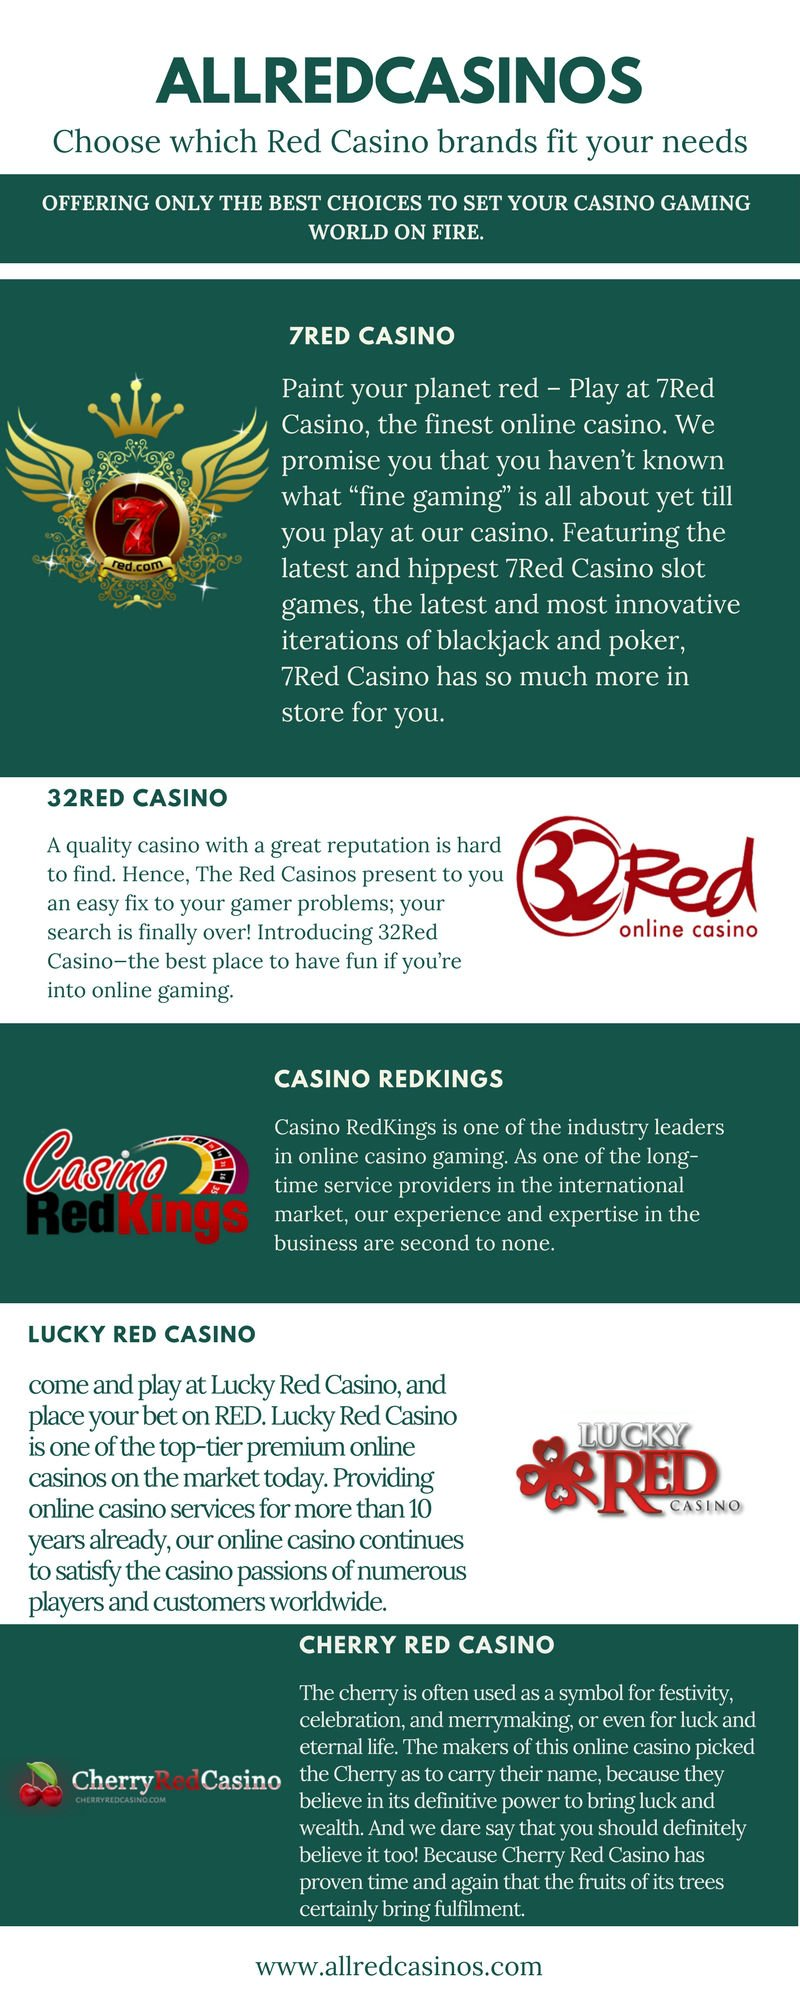 Allredcasinos infographic